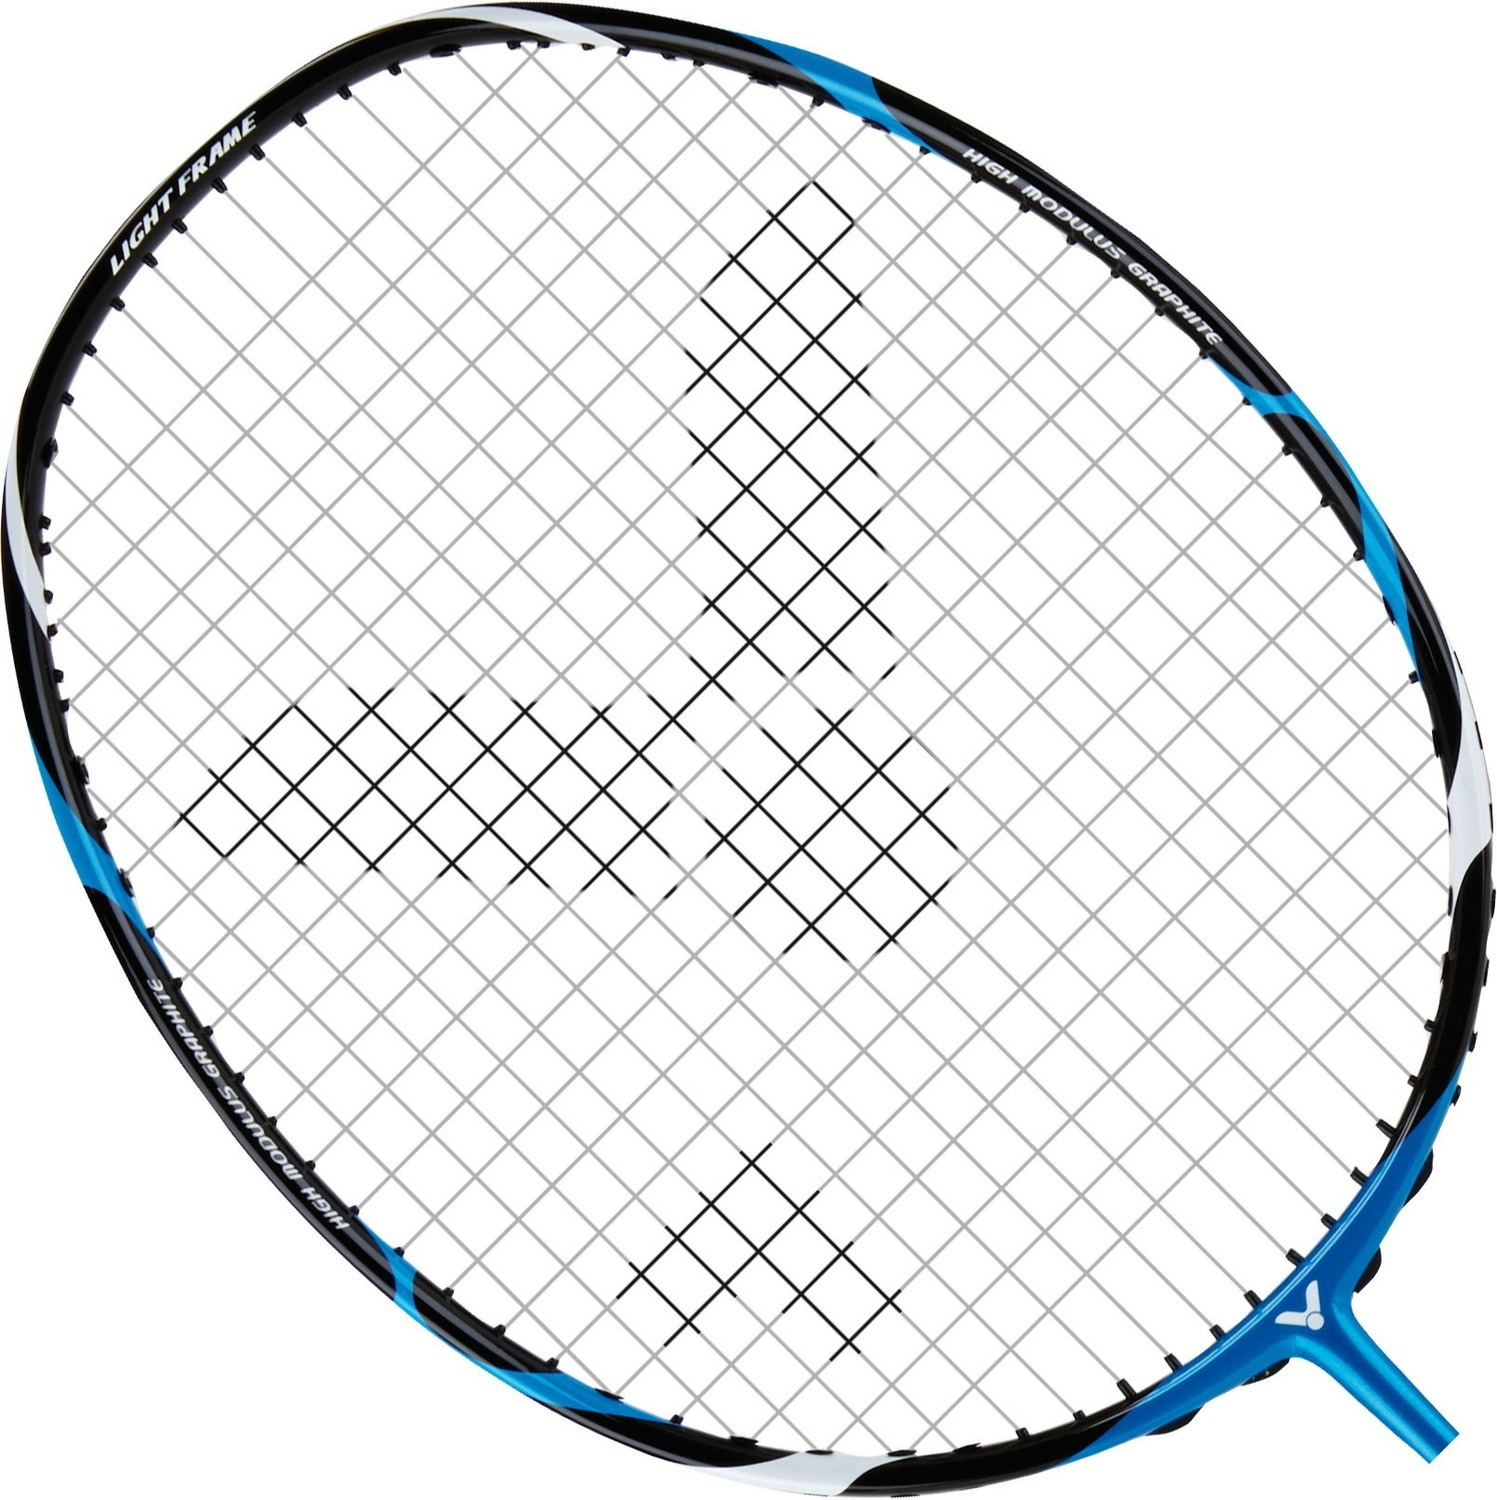 Victor Lightfighter 7000 Badminton Racket - Blue